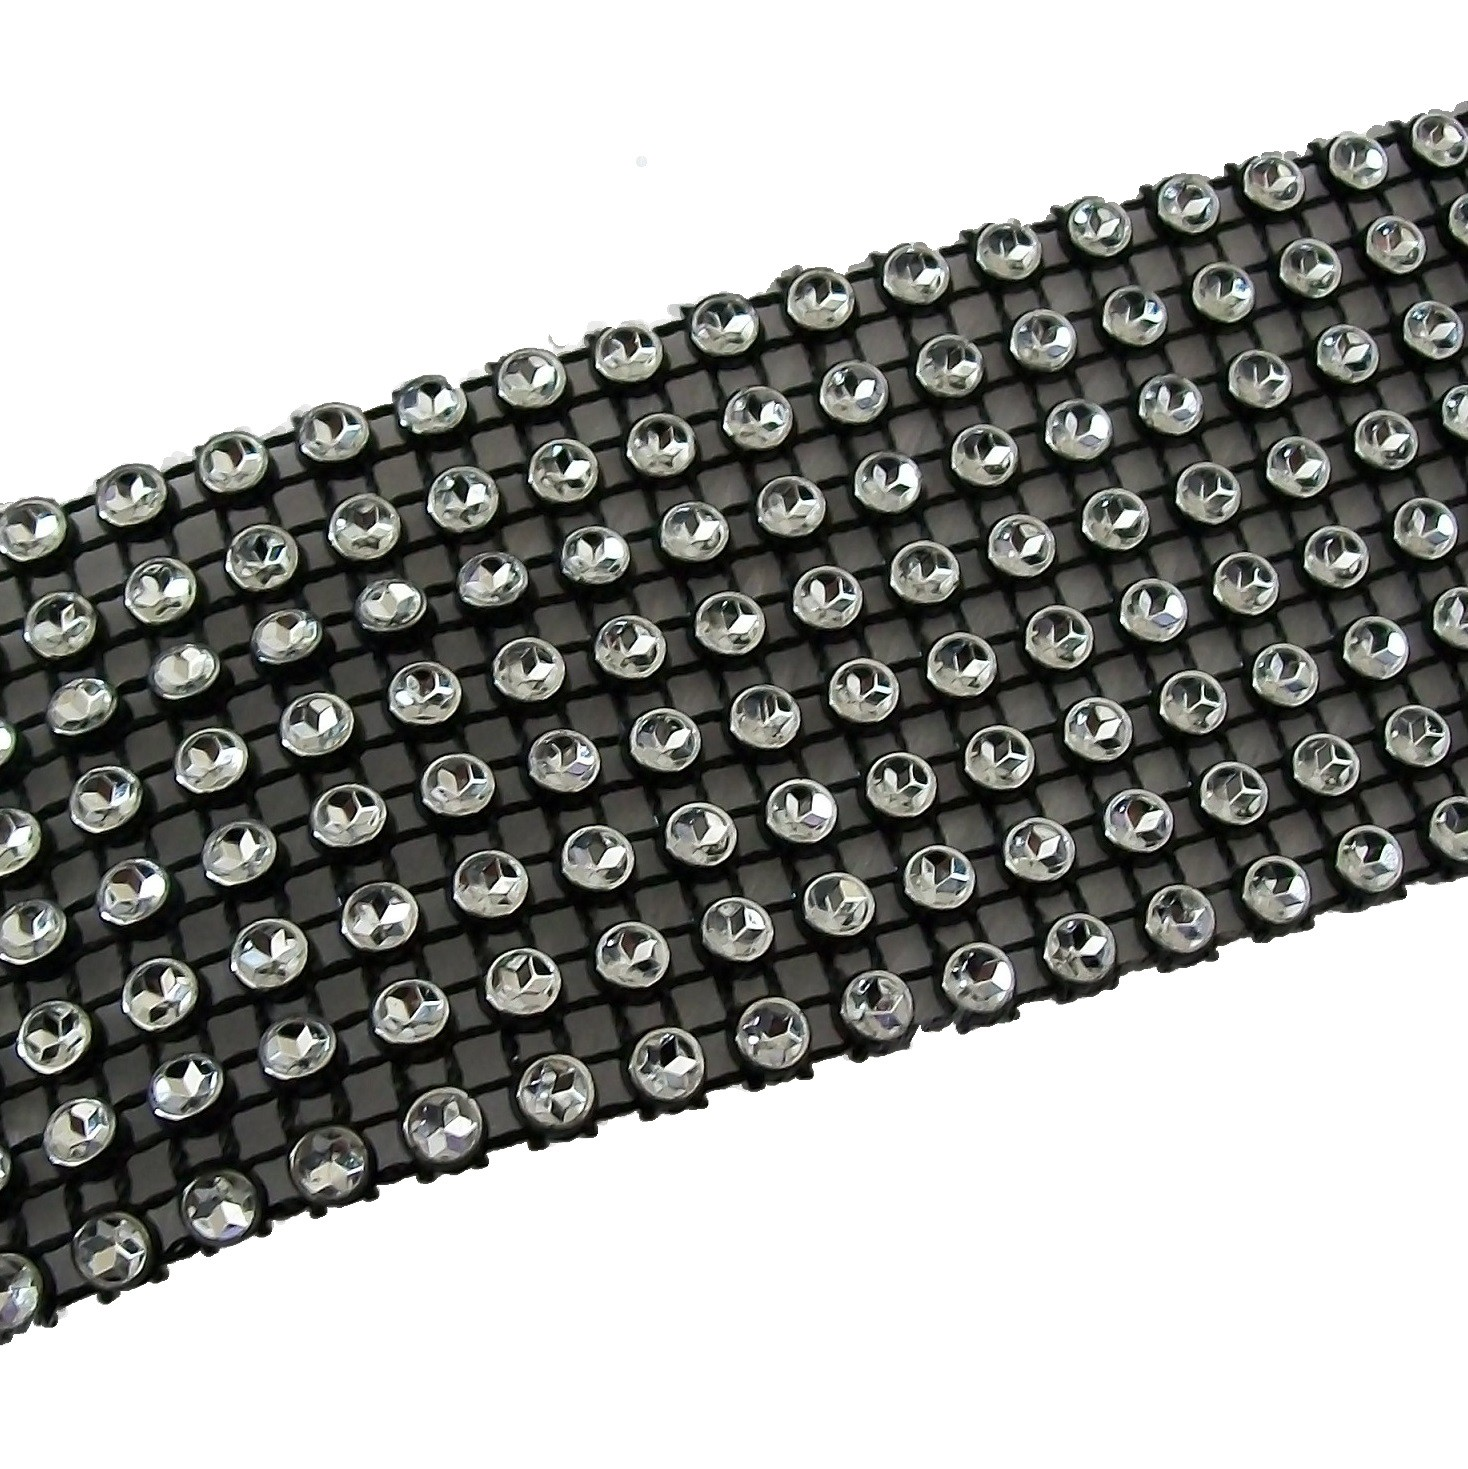 8 Row Diamante Trim 3.8cm Wide Black 3 metre length